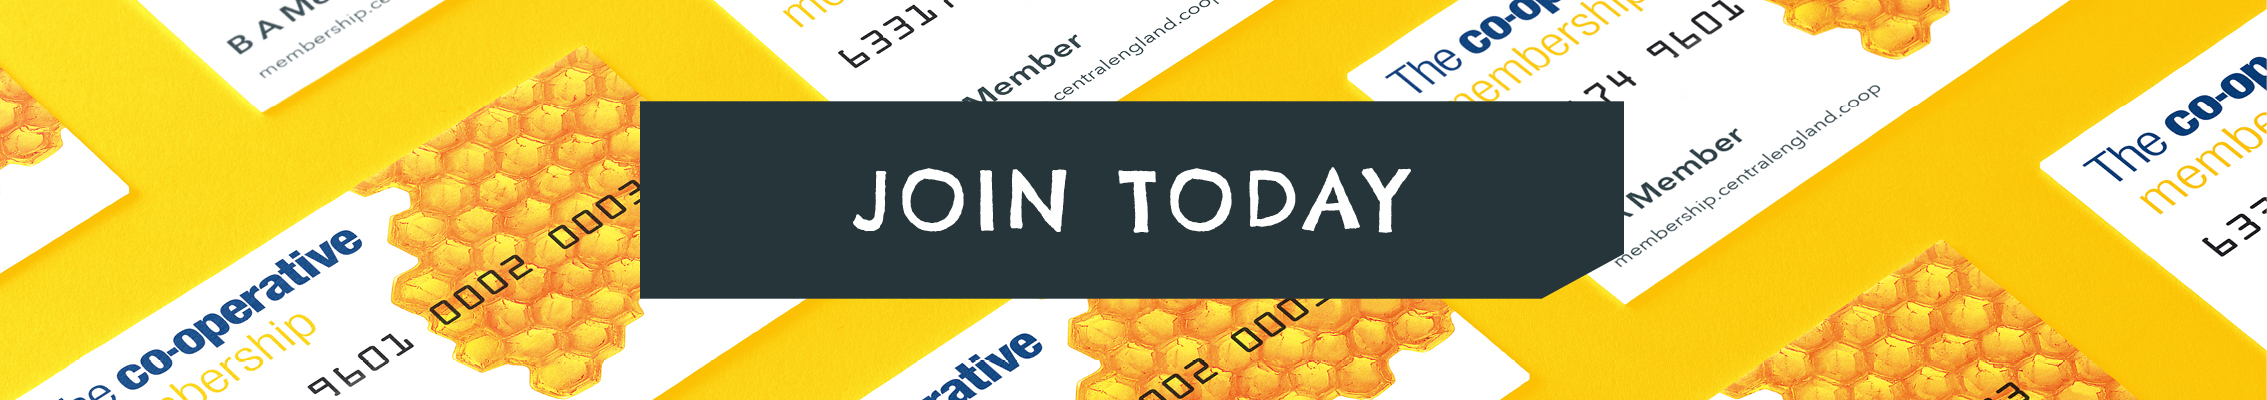 Become a member, join today